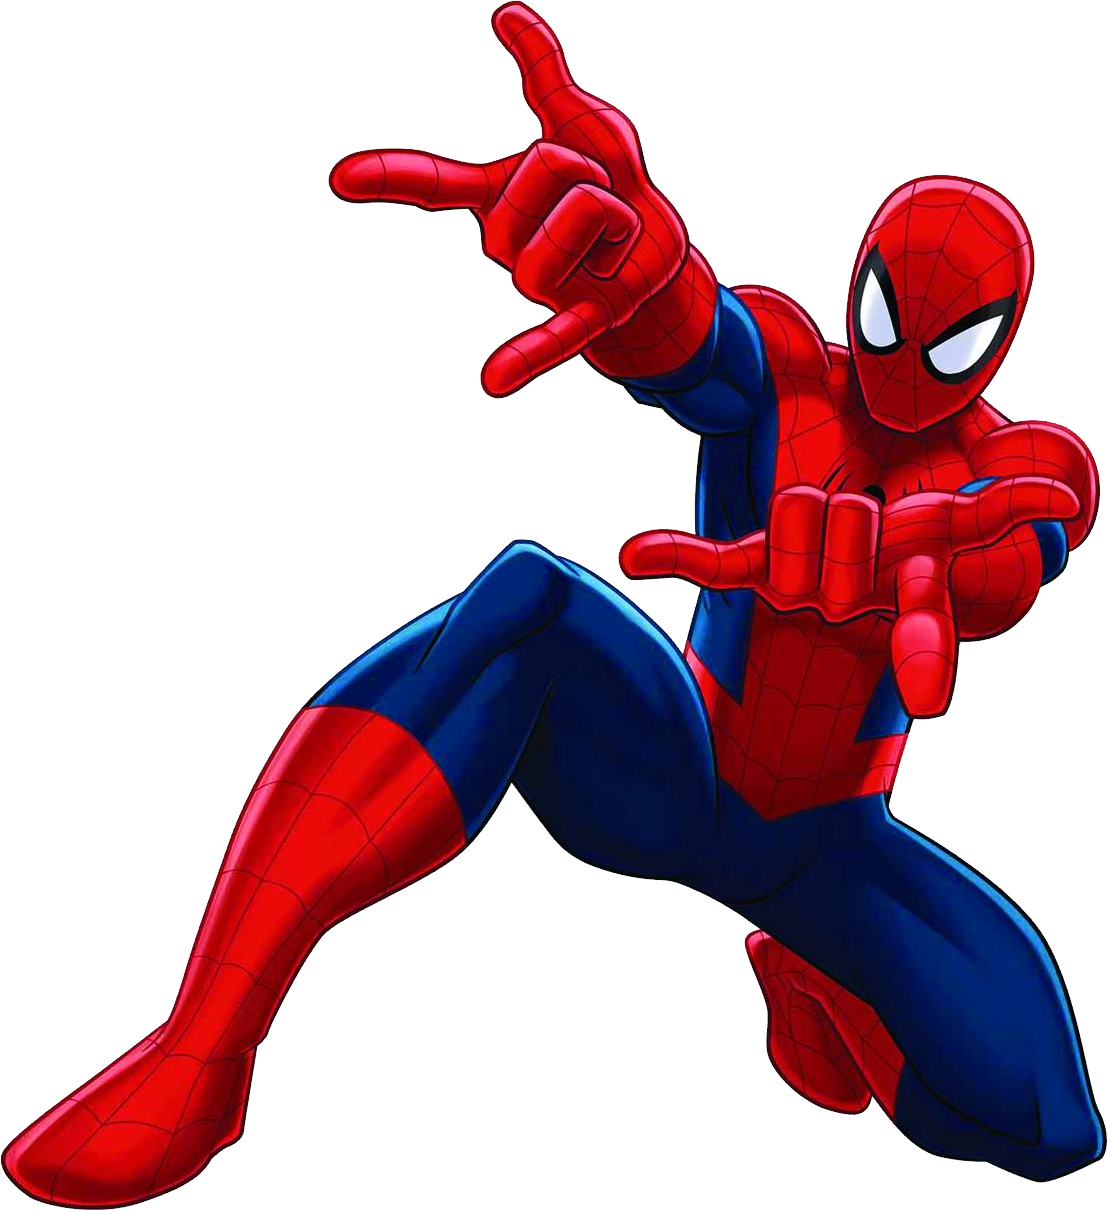 Spiderman Comic Transparent Background 1108x1210